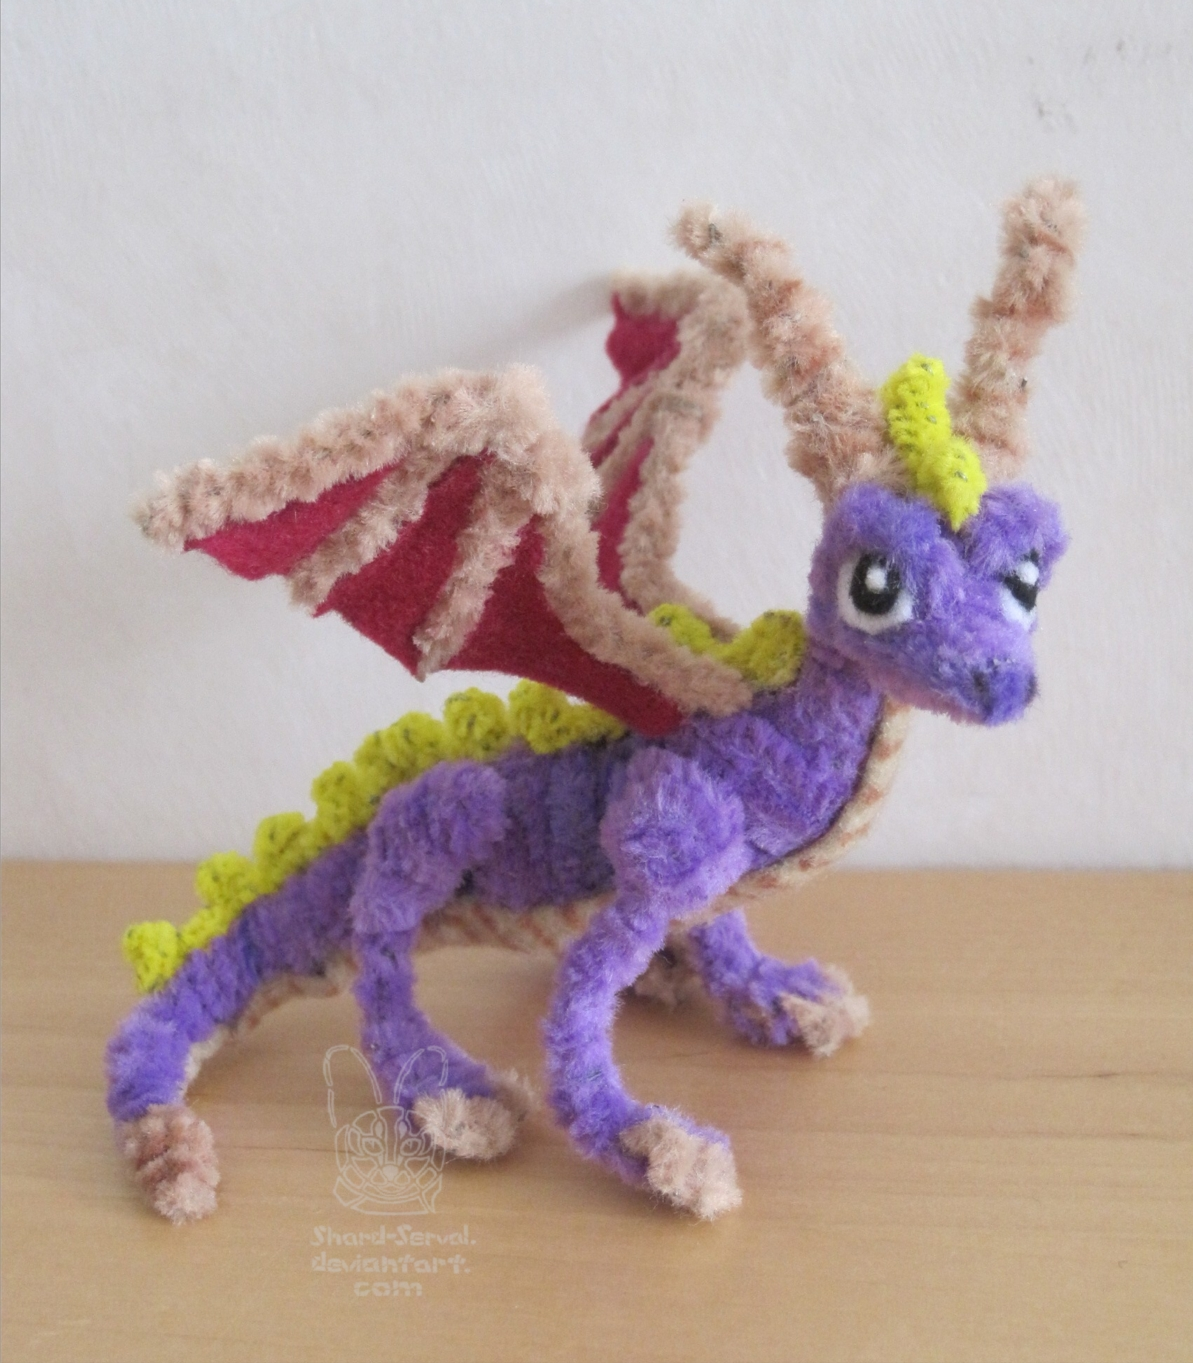 Pipe cleaners for crafts -  Pipe Cleaner Chenille Spyro By Sherval